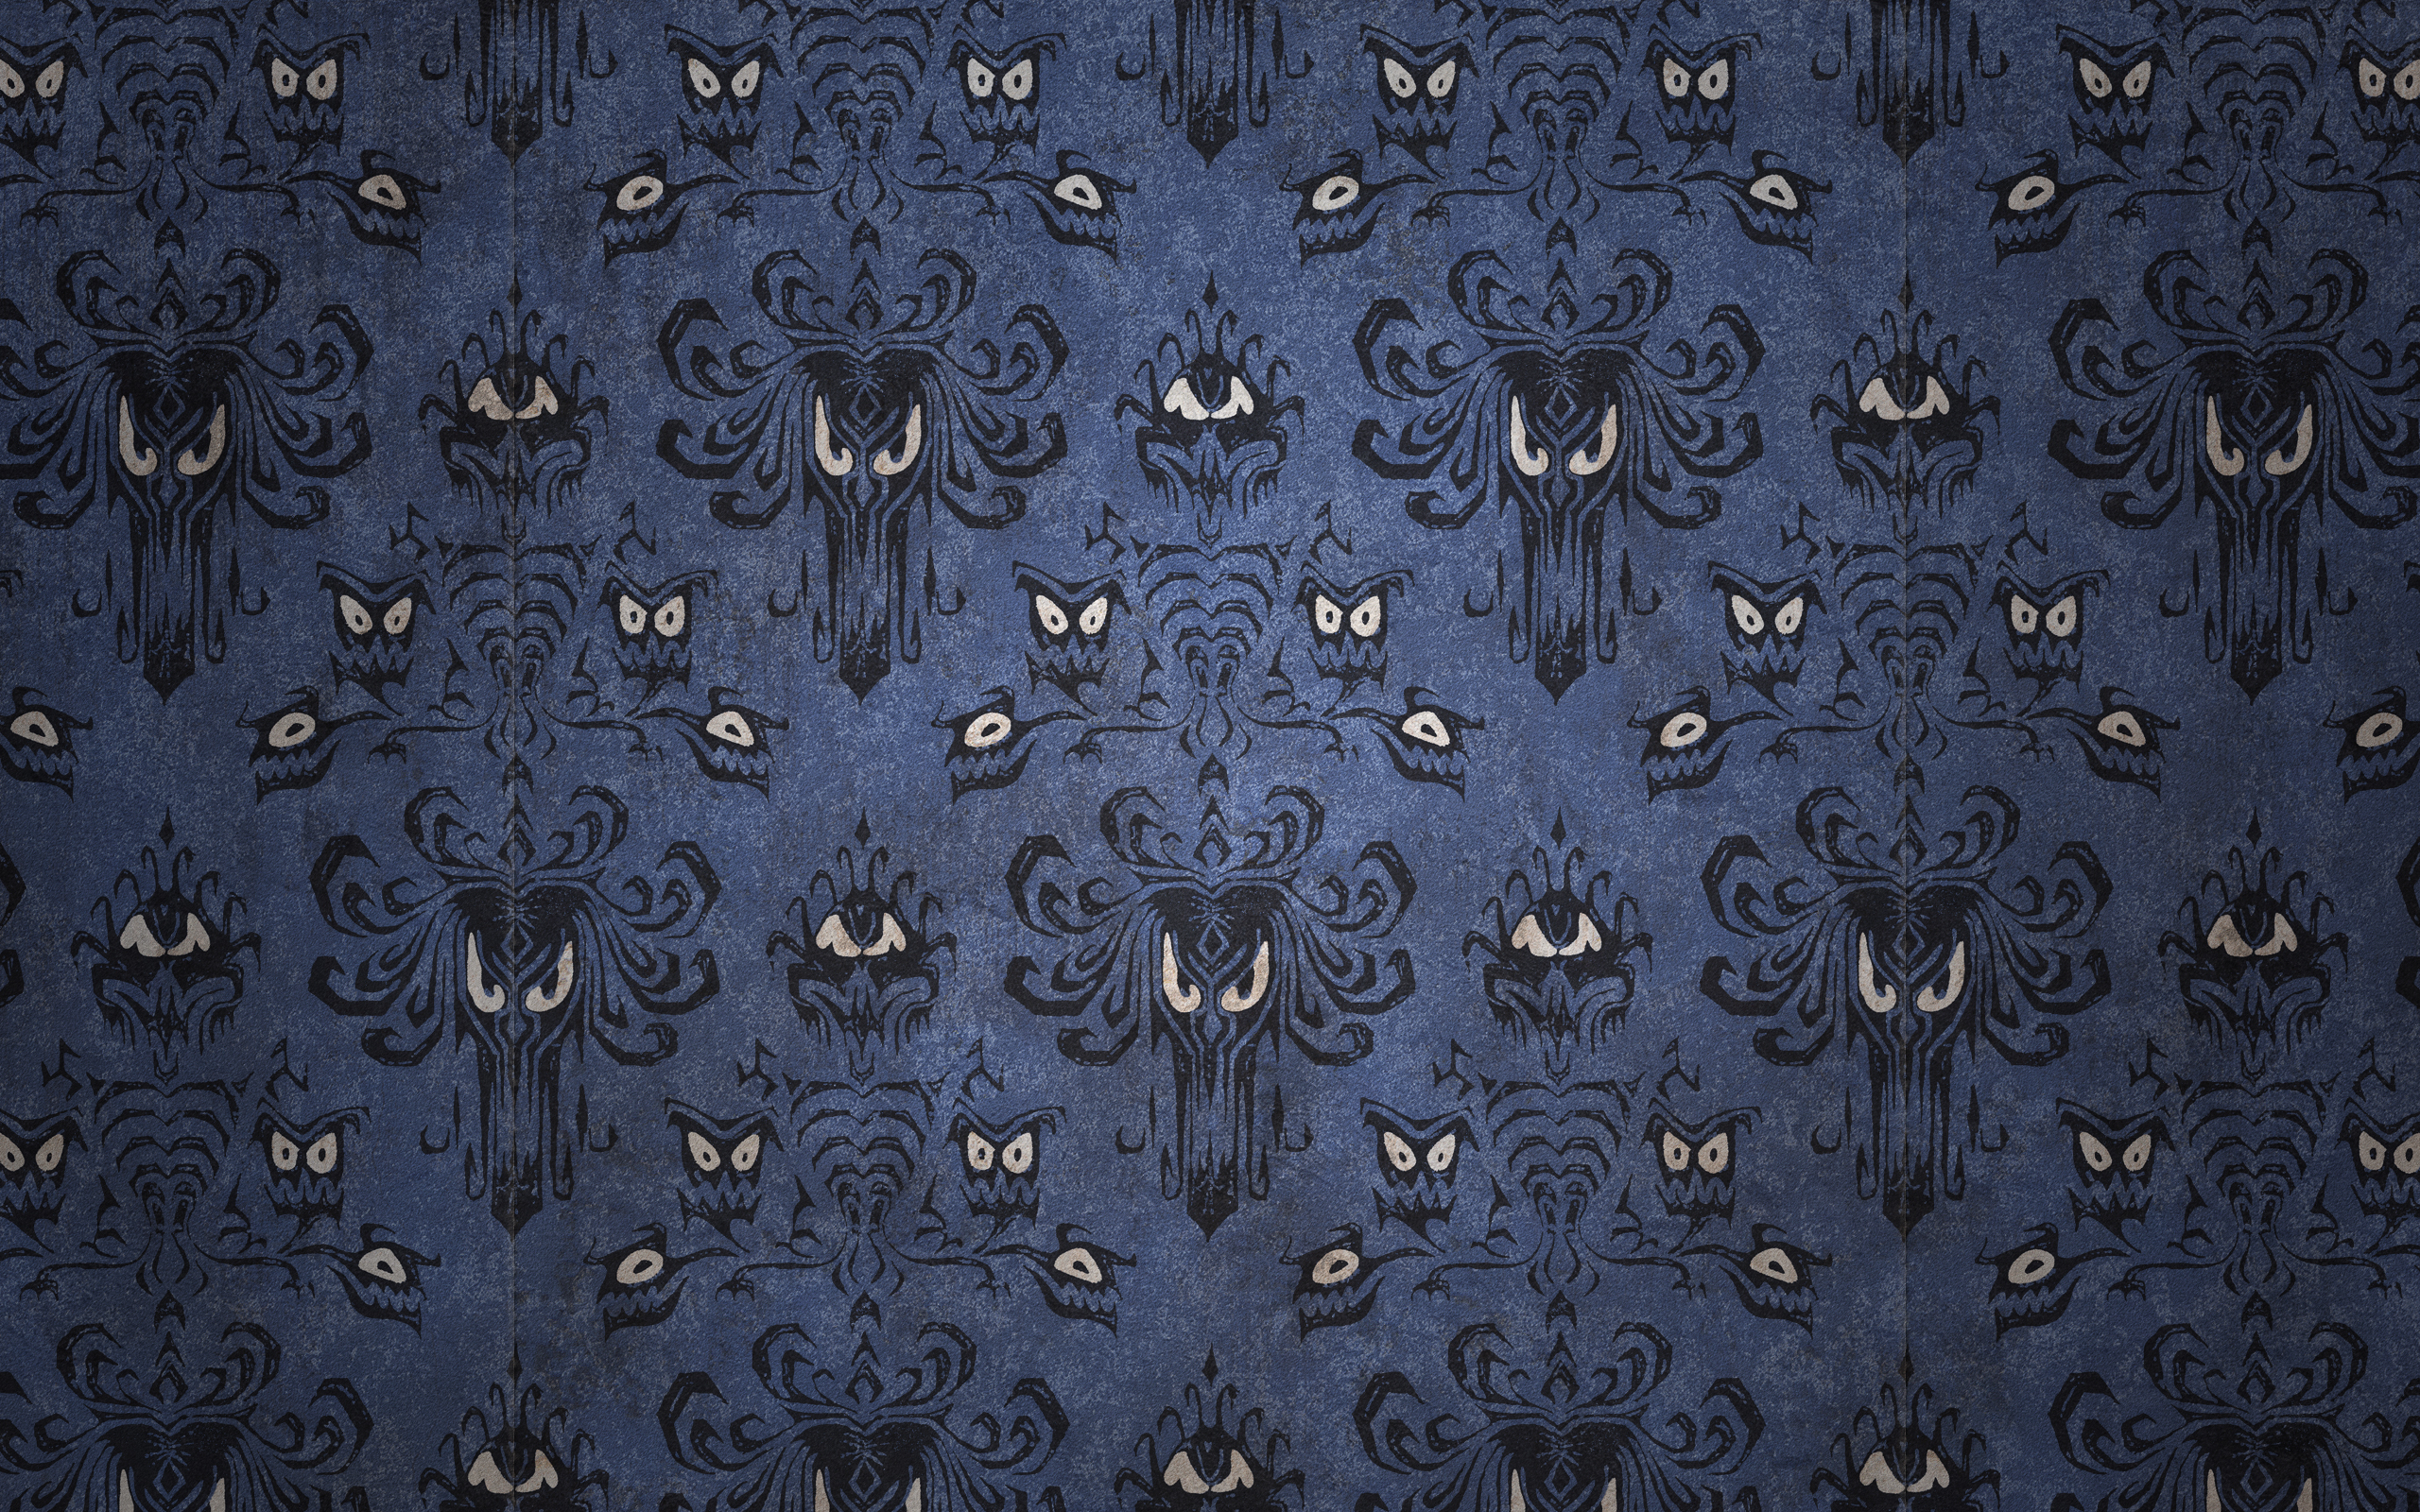 Haunted Mansion Desktop Wallpaper Has anyone had any luc...